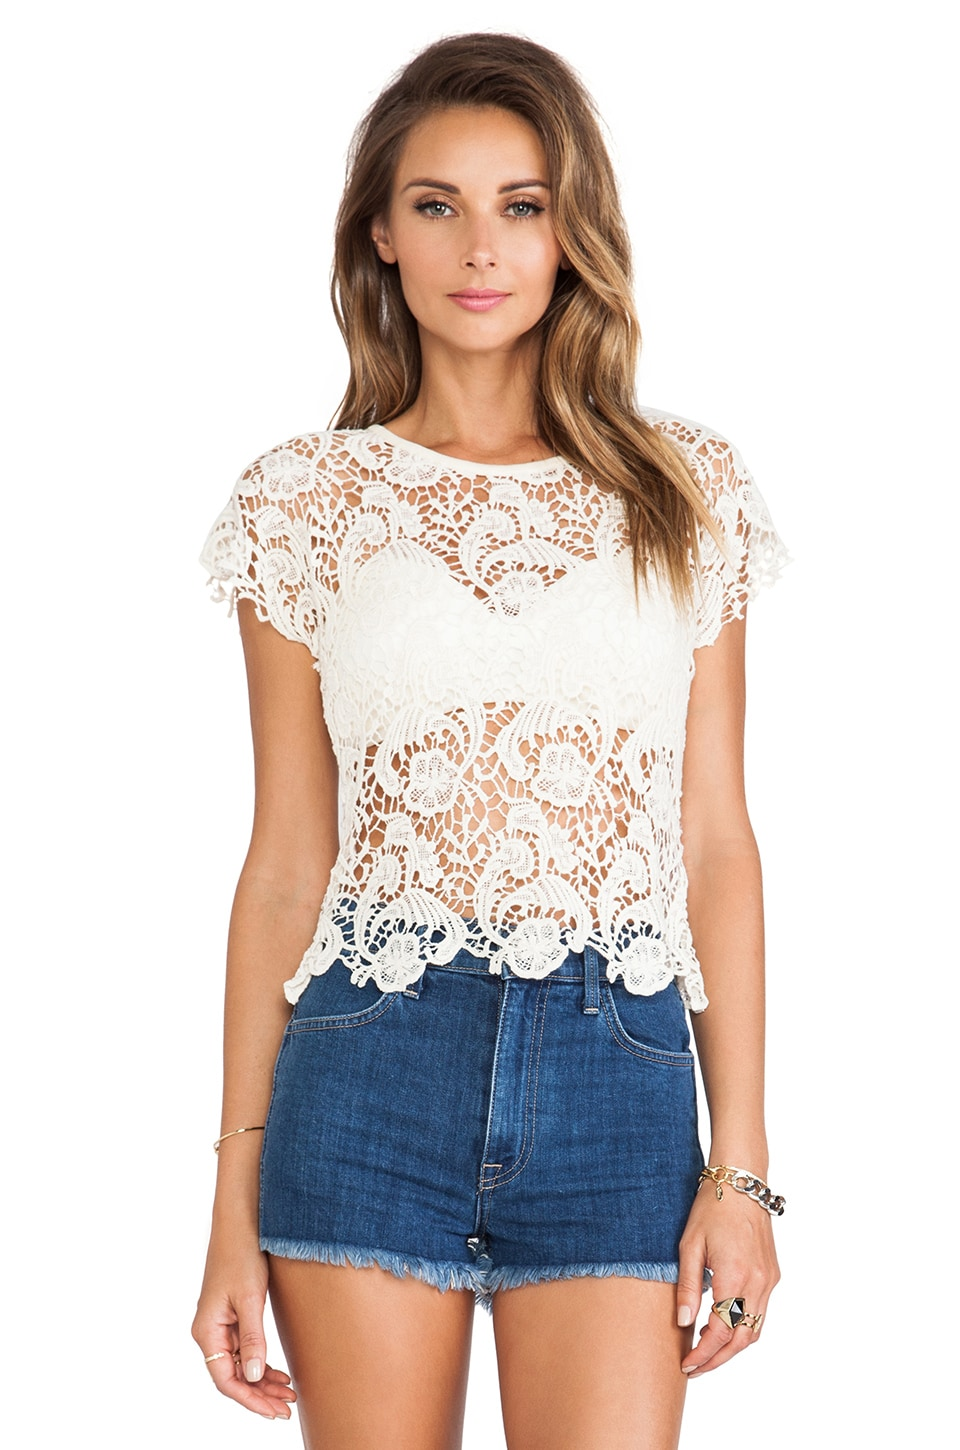 Lisa Maree The Lolly Shop Top in Whiskey